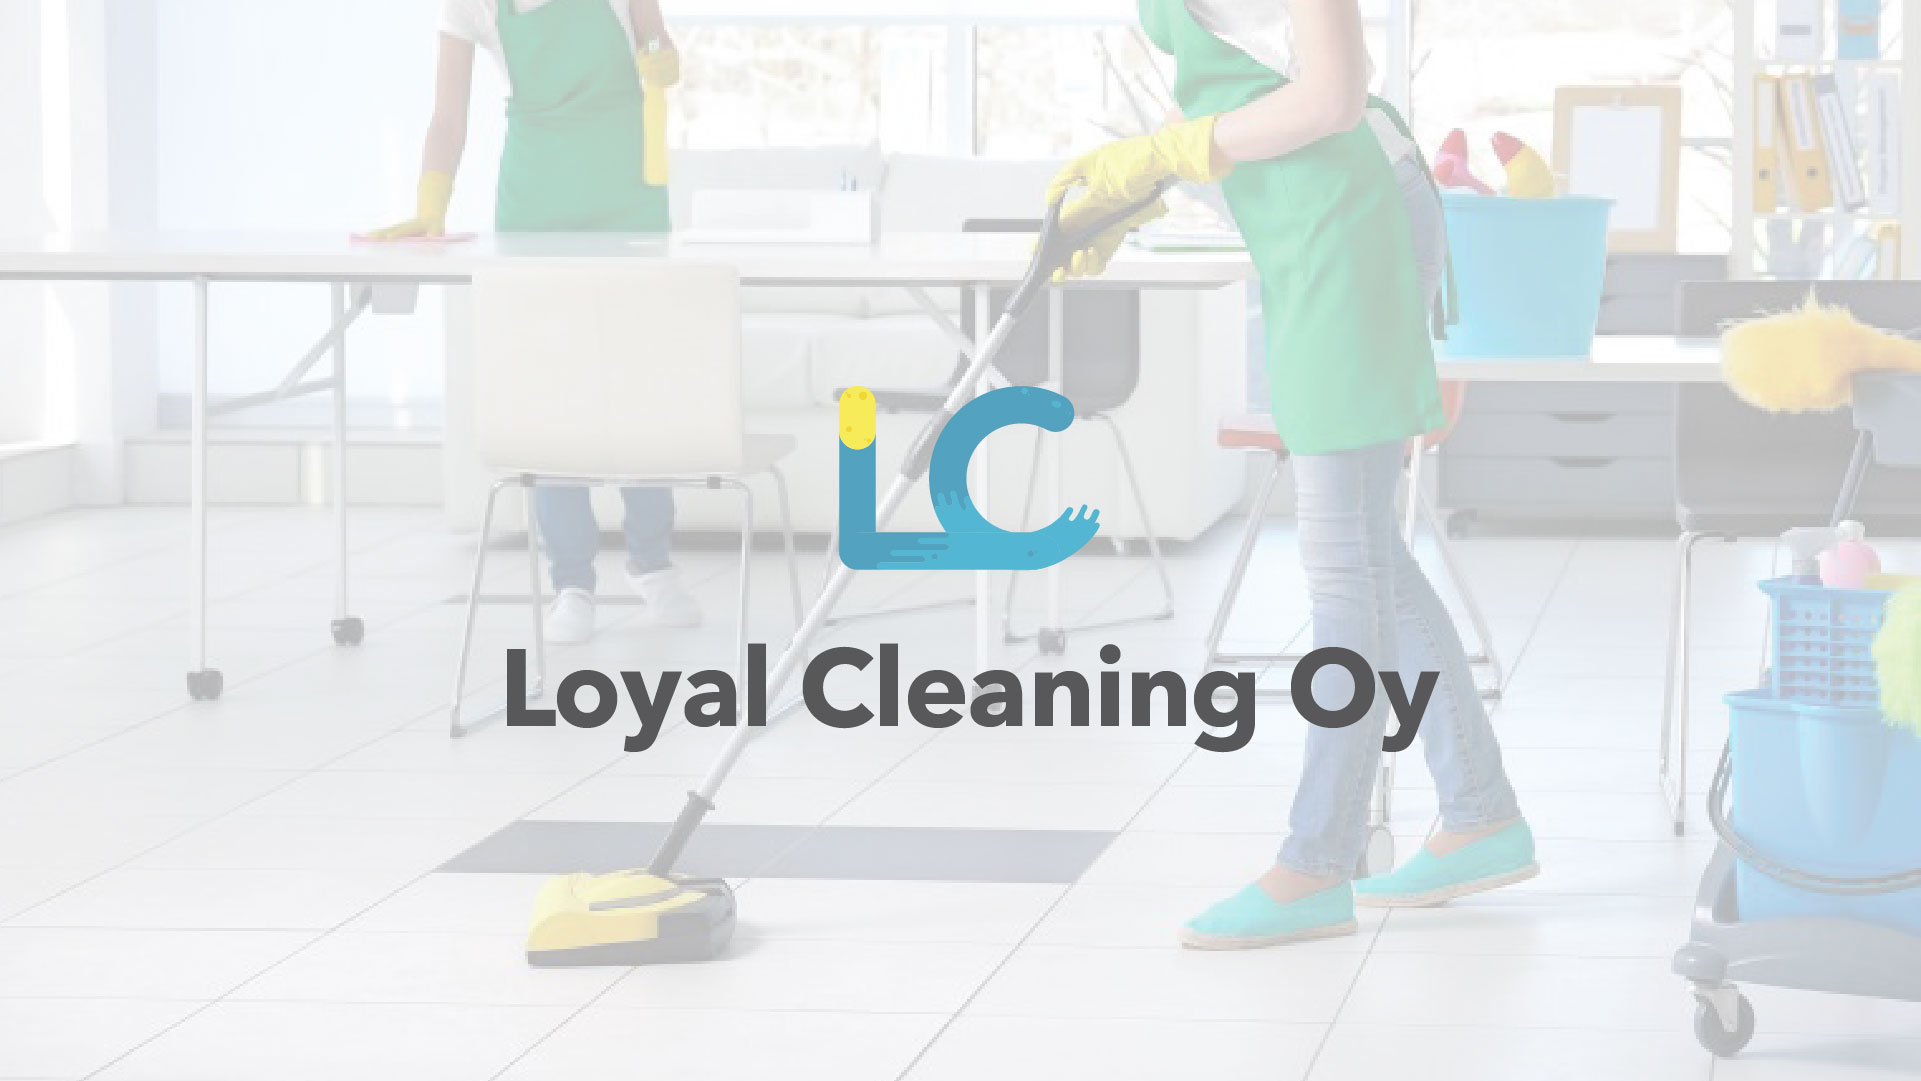 Loyal_Cleaning_Oy_Brand-01